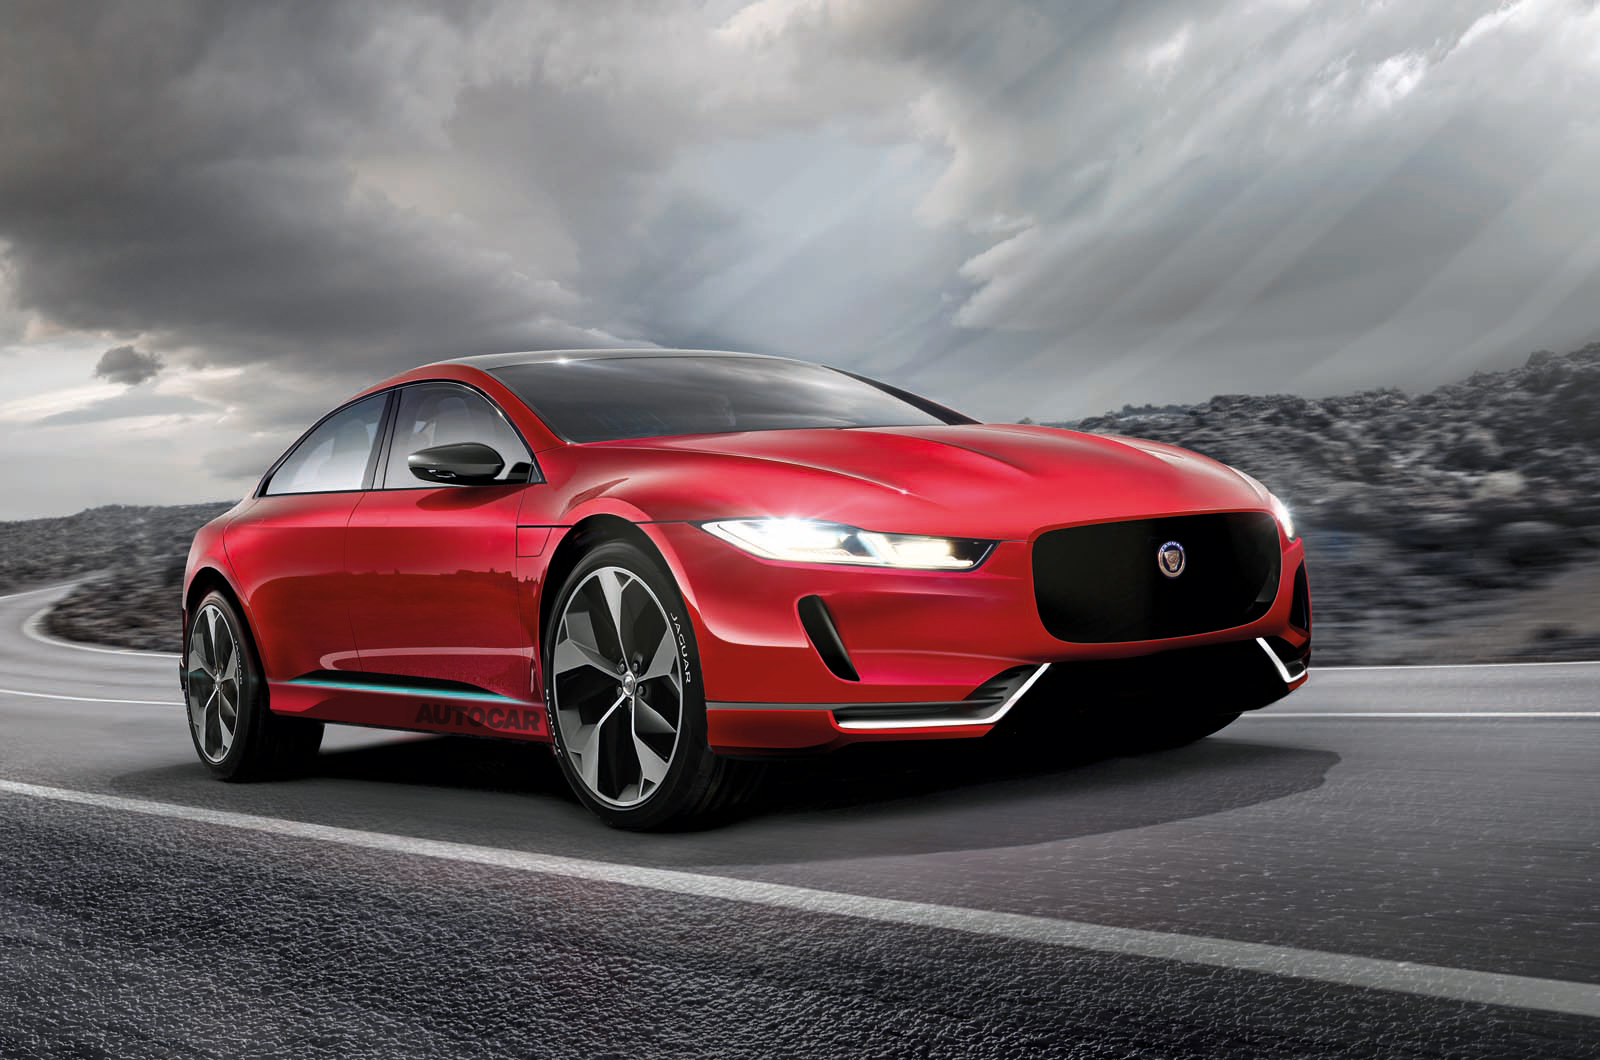 Opinion: The future of Jaguar starts now